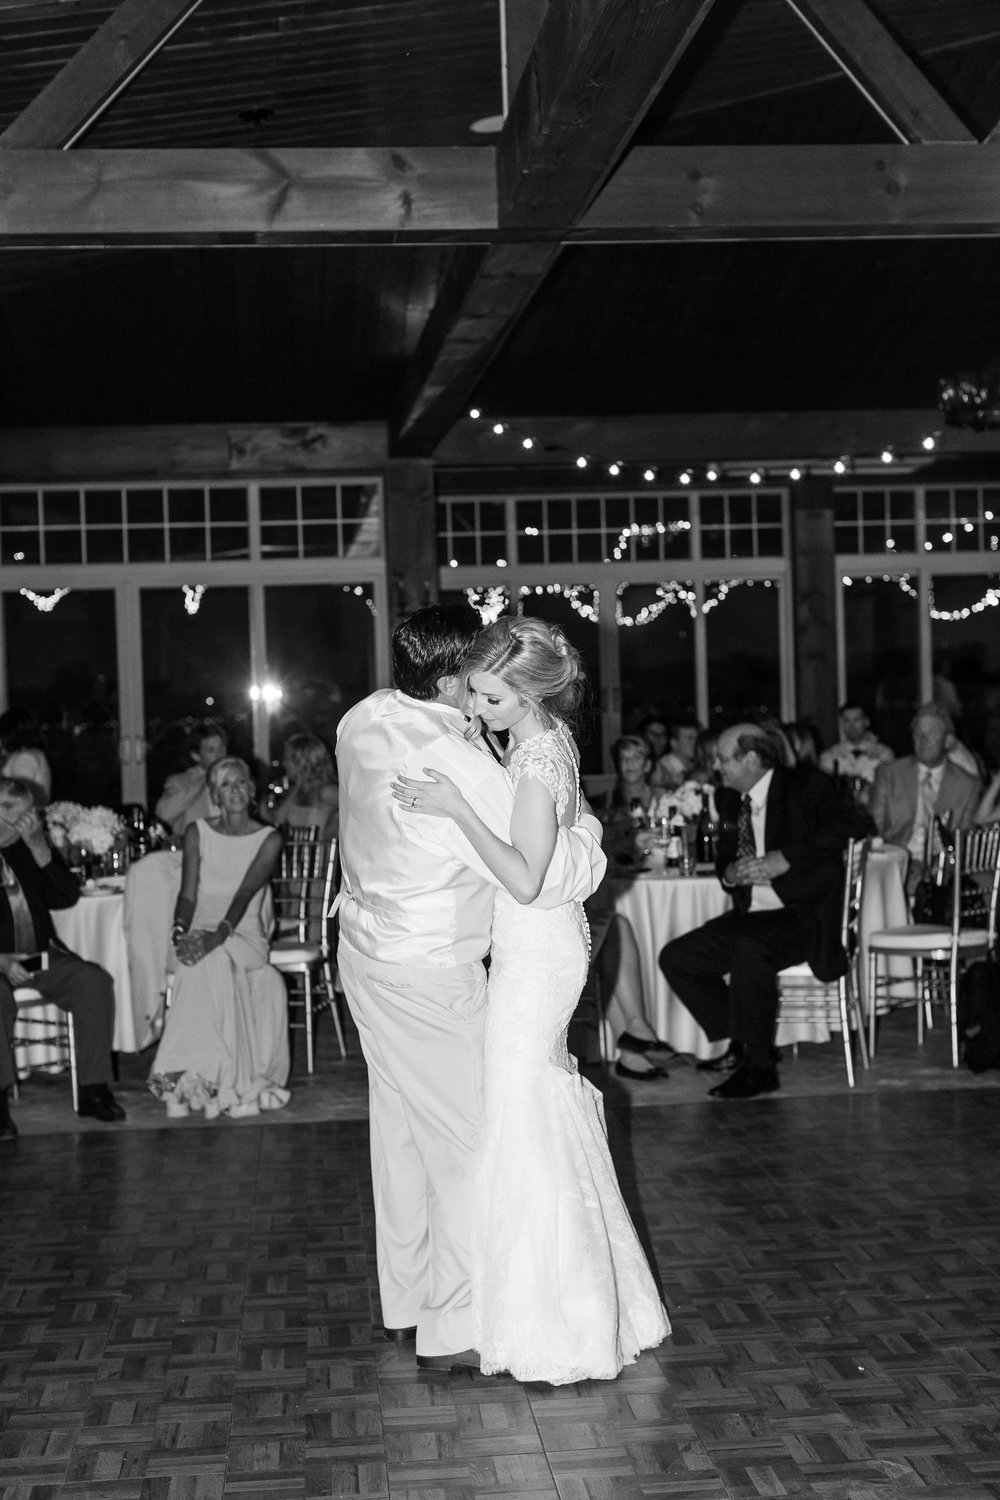 GarneauWeddingReception©ASP-349.jpg